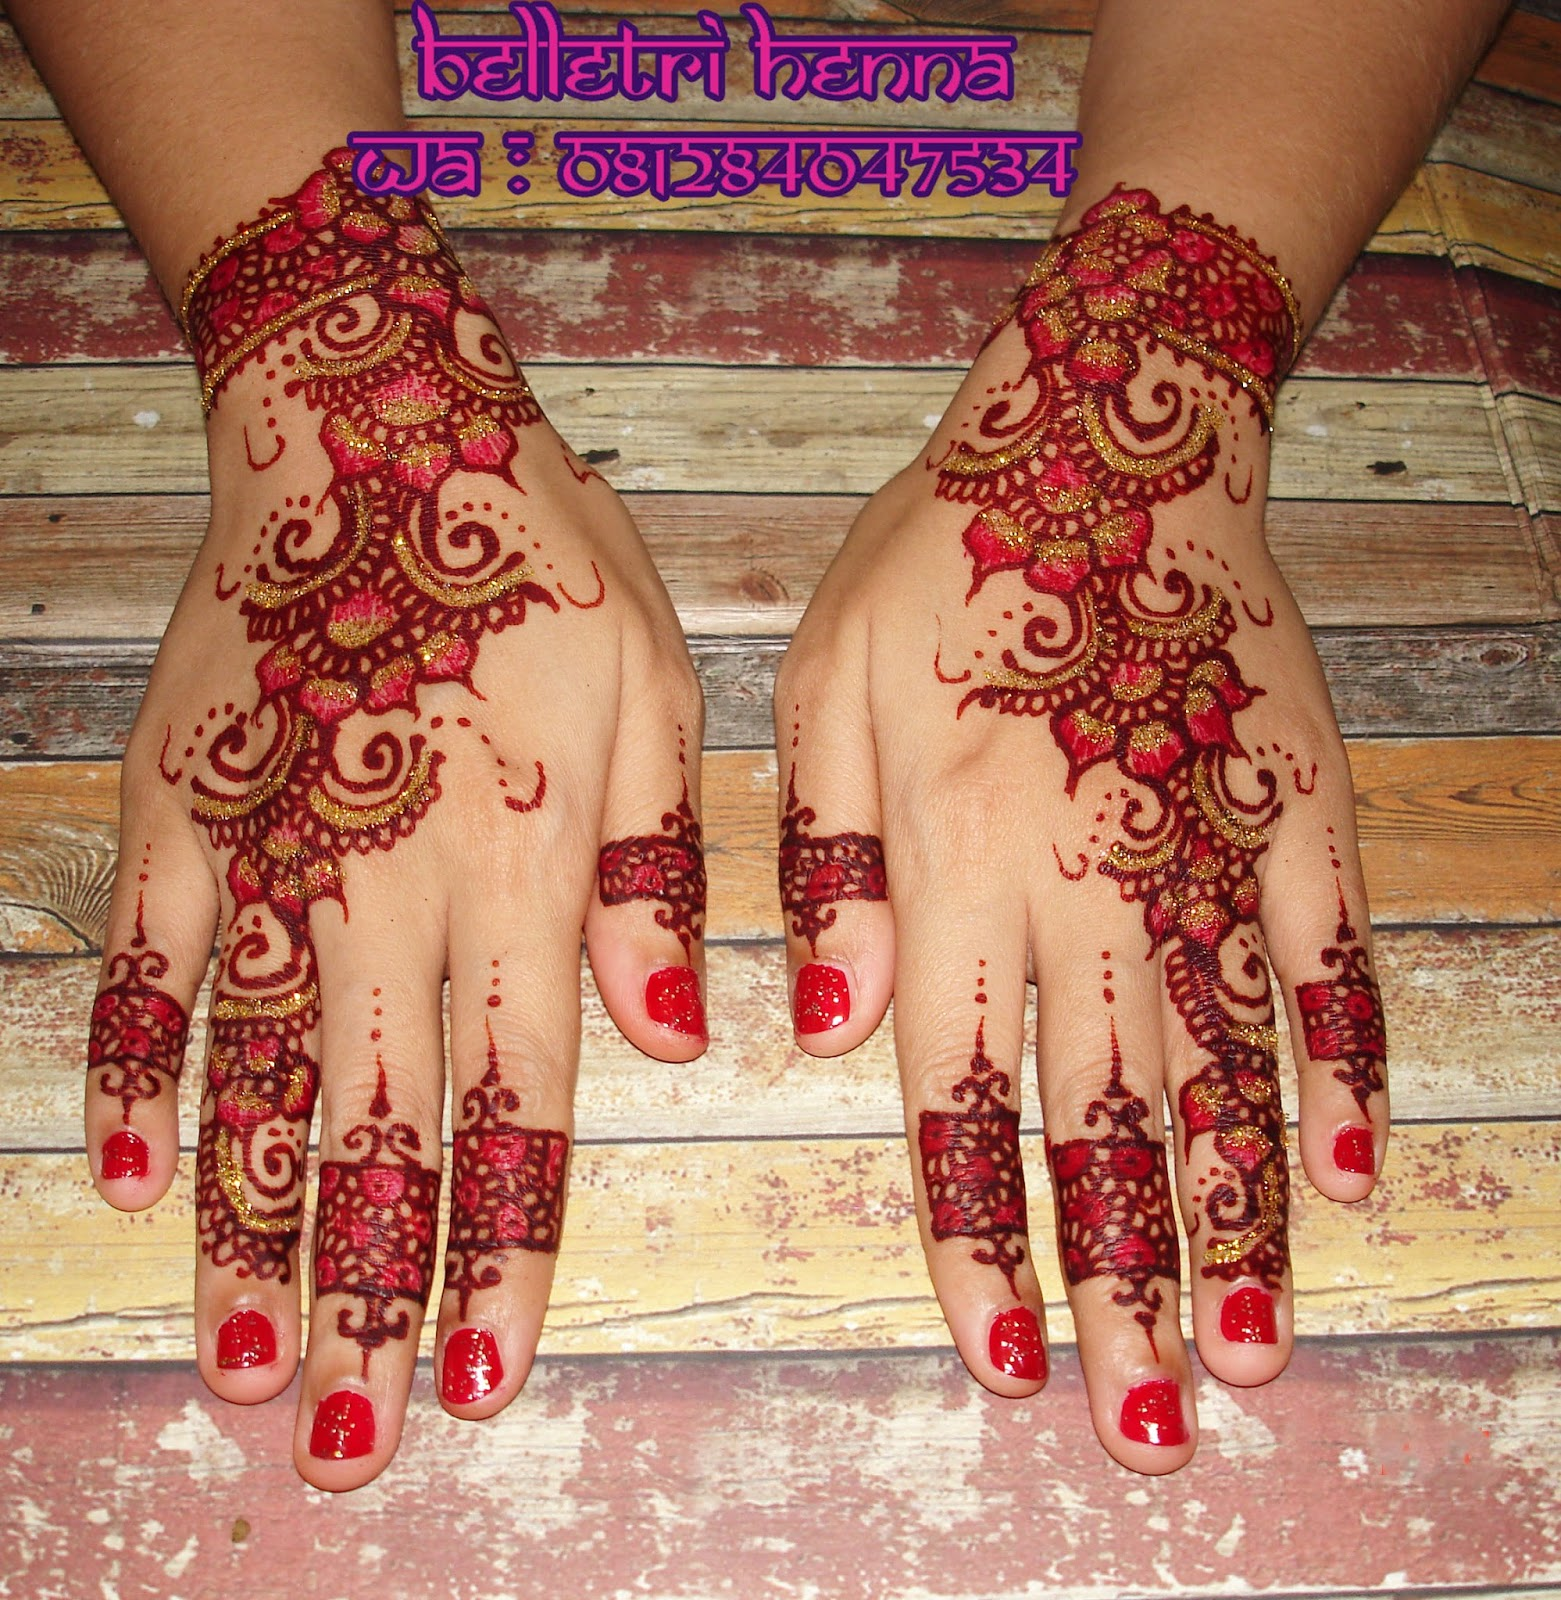 BELLETRI HENNA August 2015